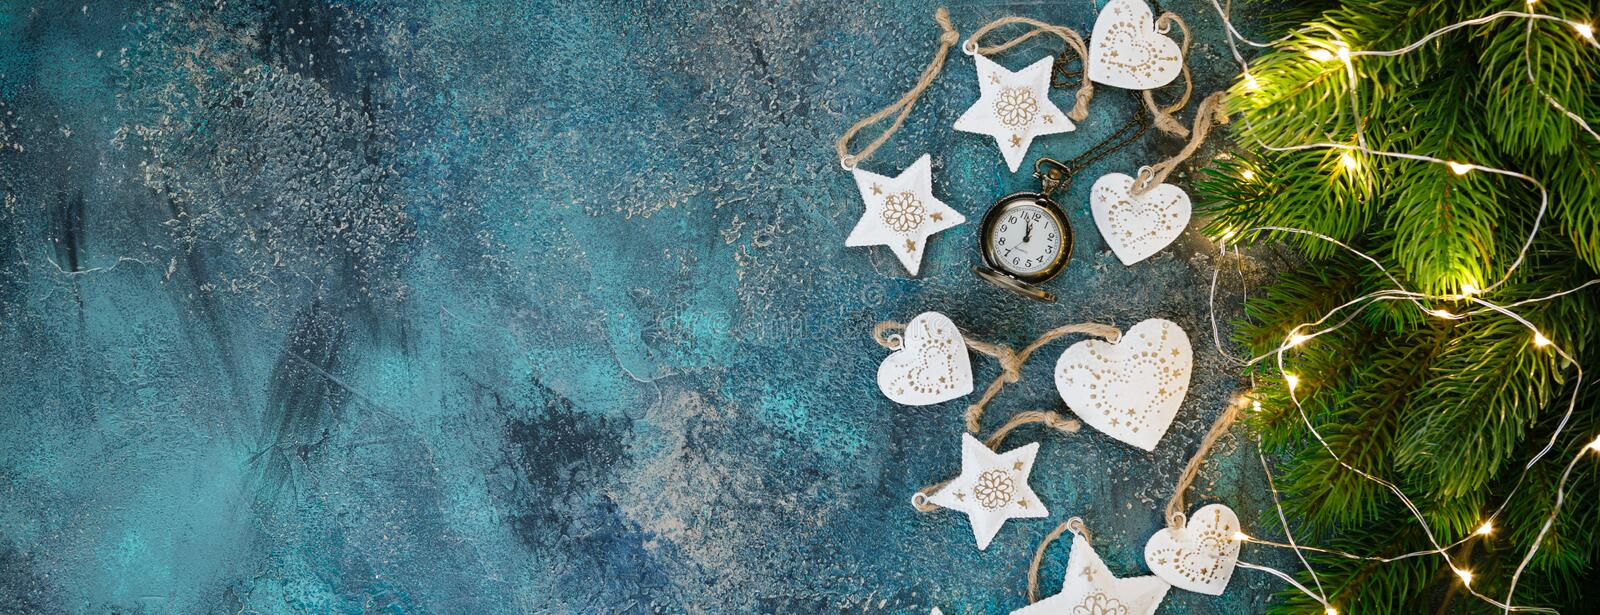 Christmas holiday frame with festive decorations - white metal hearts and old pjcket wathes on old blue background. Christmas royalty free stock photos